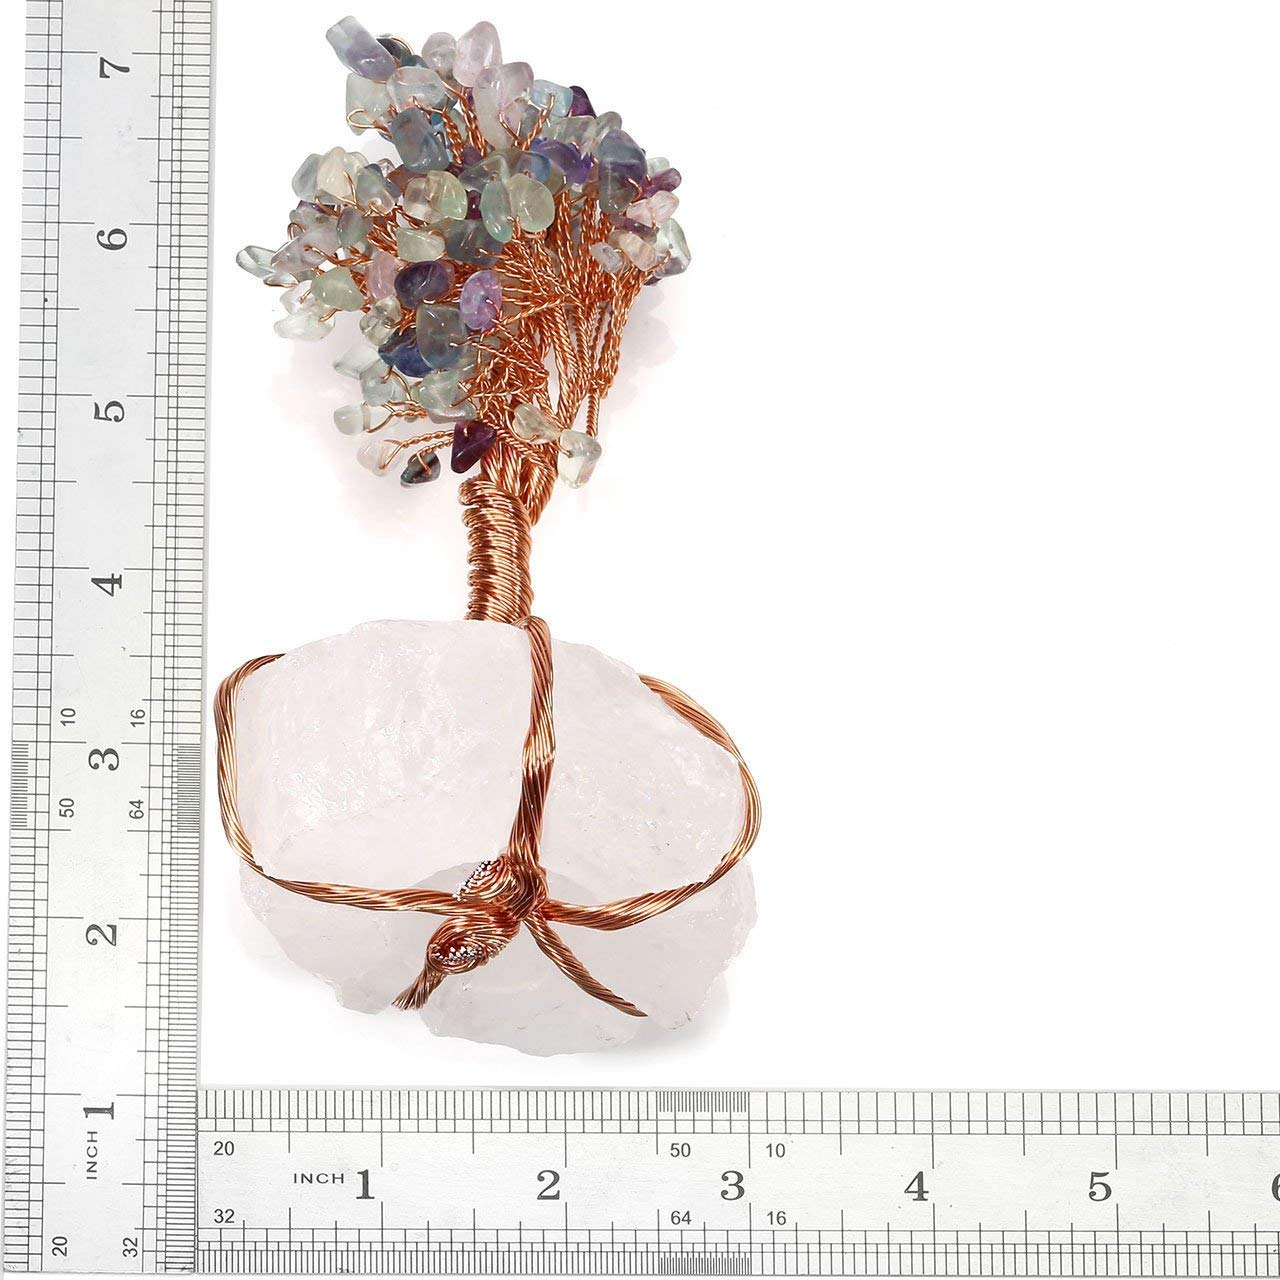 June/&Ann Feng Shui Ornament Copper Wrapped on Amethyst Quartz Cluster Base Bonsai Money Tree Figurine Decoration for Wealth and Luck Purple Crystal Money Tree